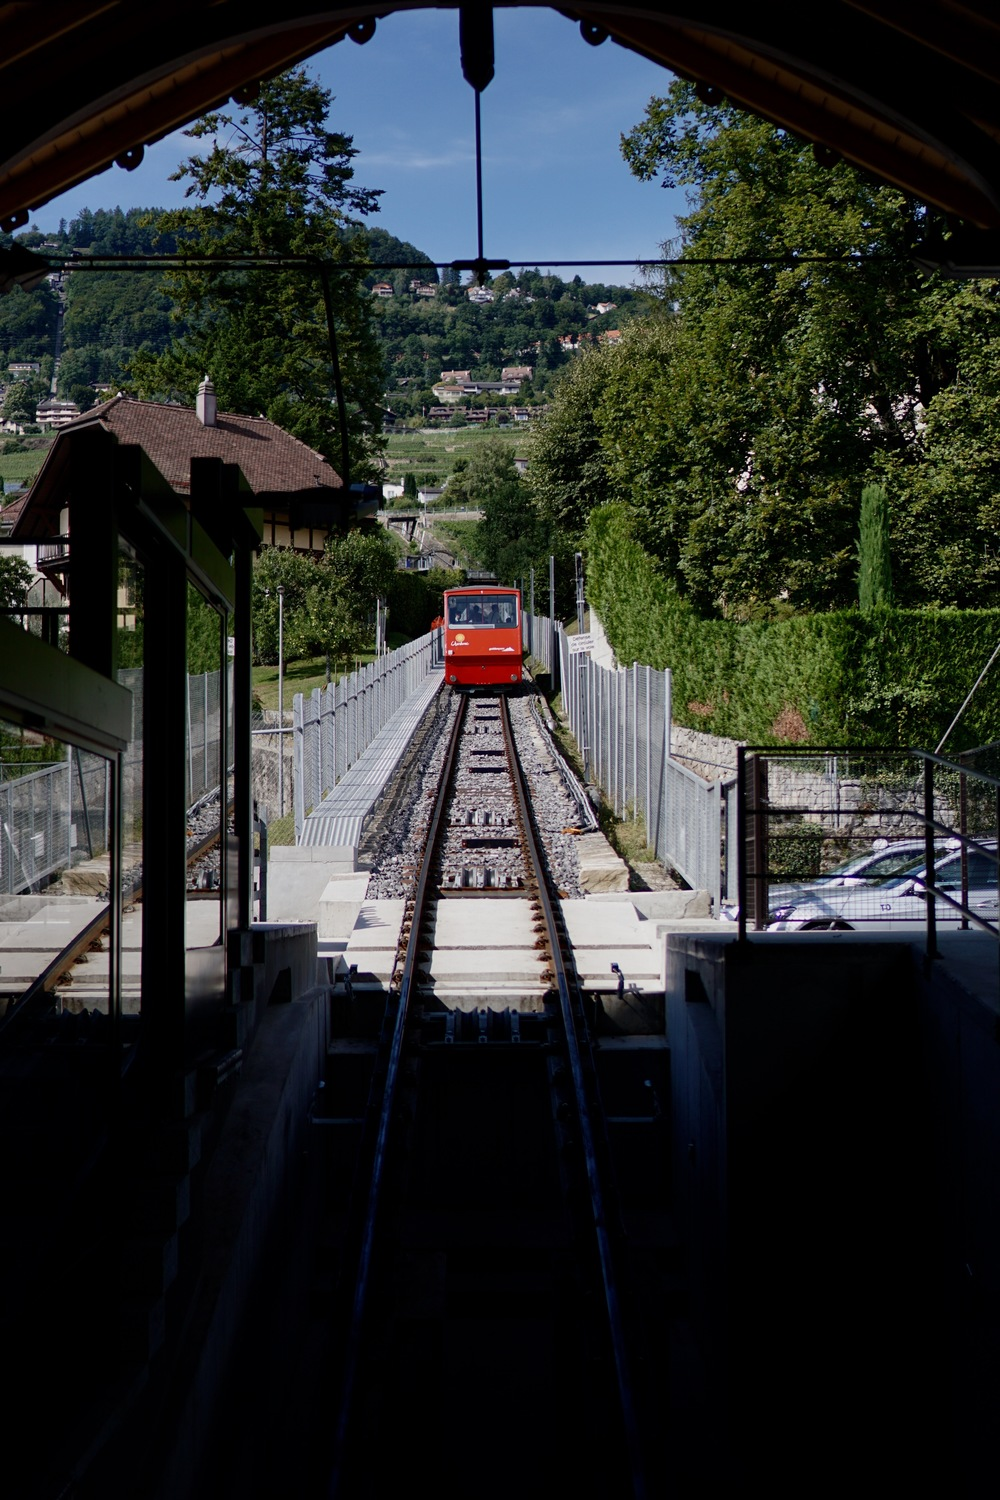 Funicular into the Lavaux wine region that we weren't quite able to catch. Clearly.